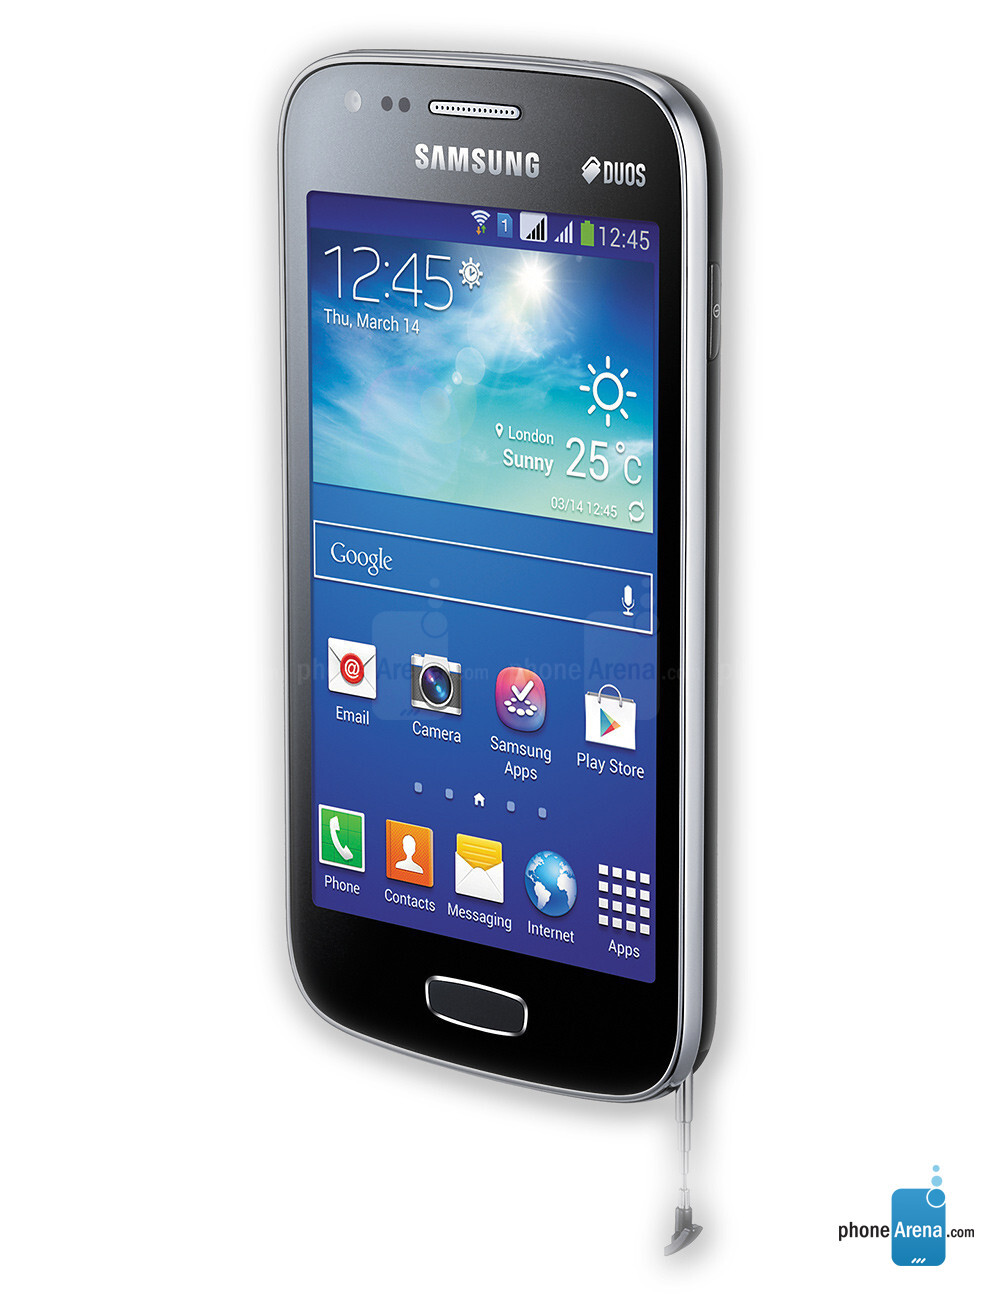 samsung galaxy s ii tv specs. Black Bedroom Furniture Sets. Home Design Ideas